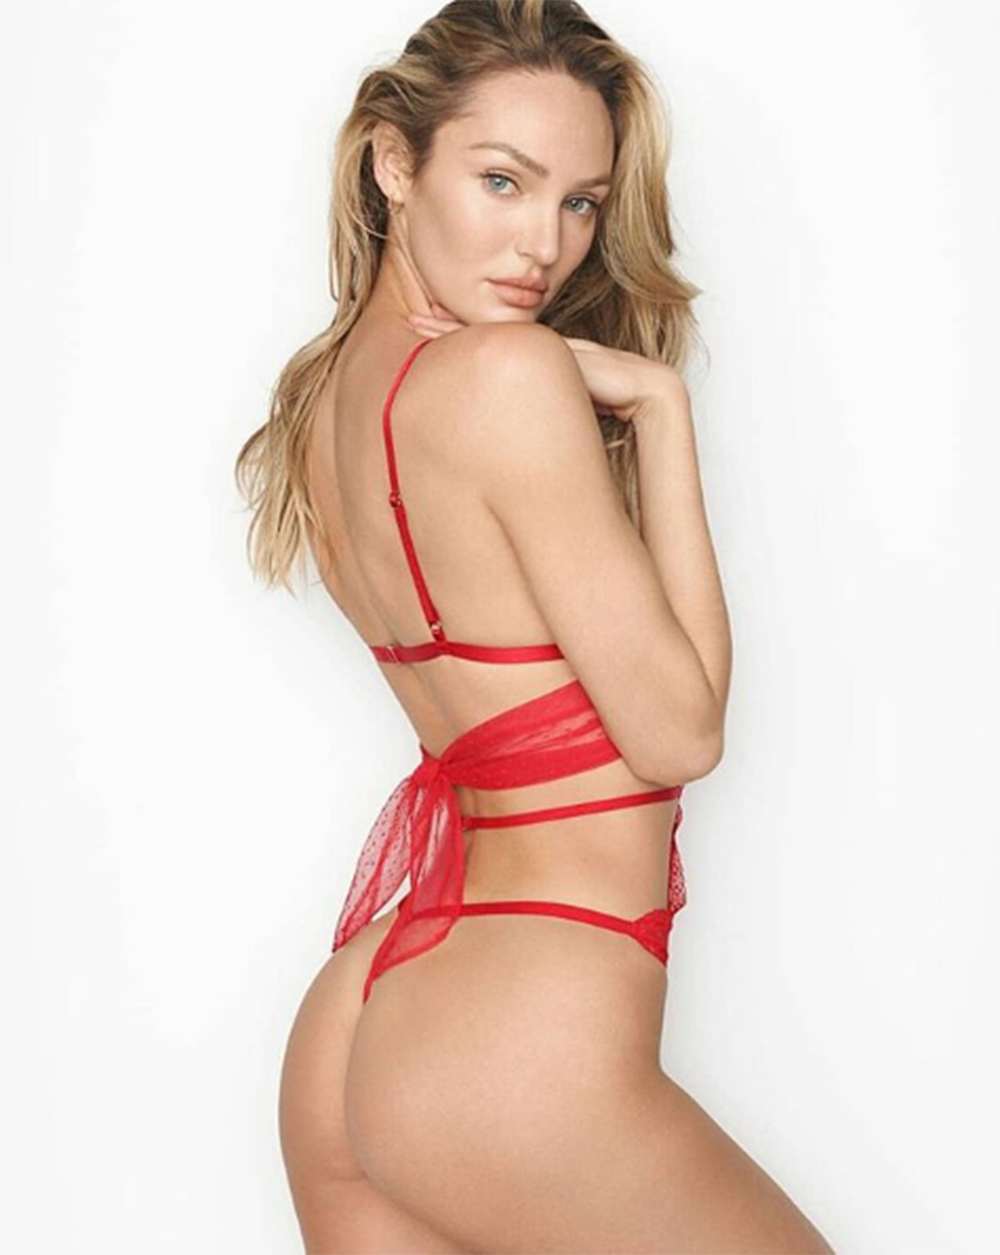 Victorias Secret - Candice Swanepoel - Κάντις Σουάνπολ